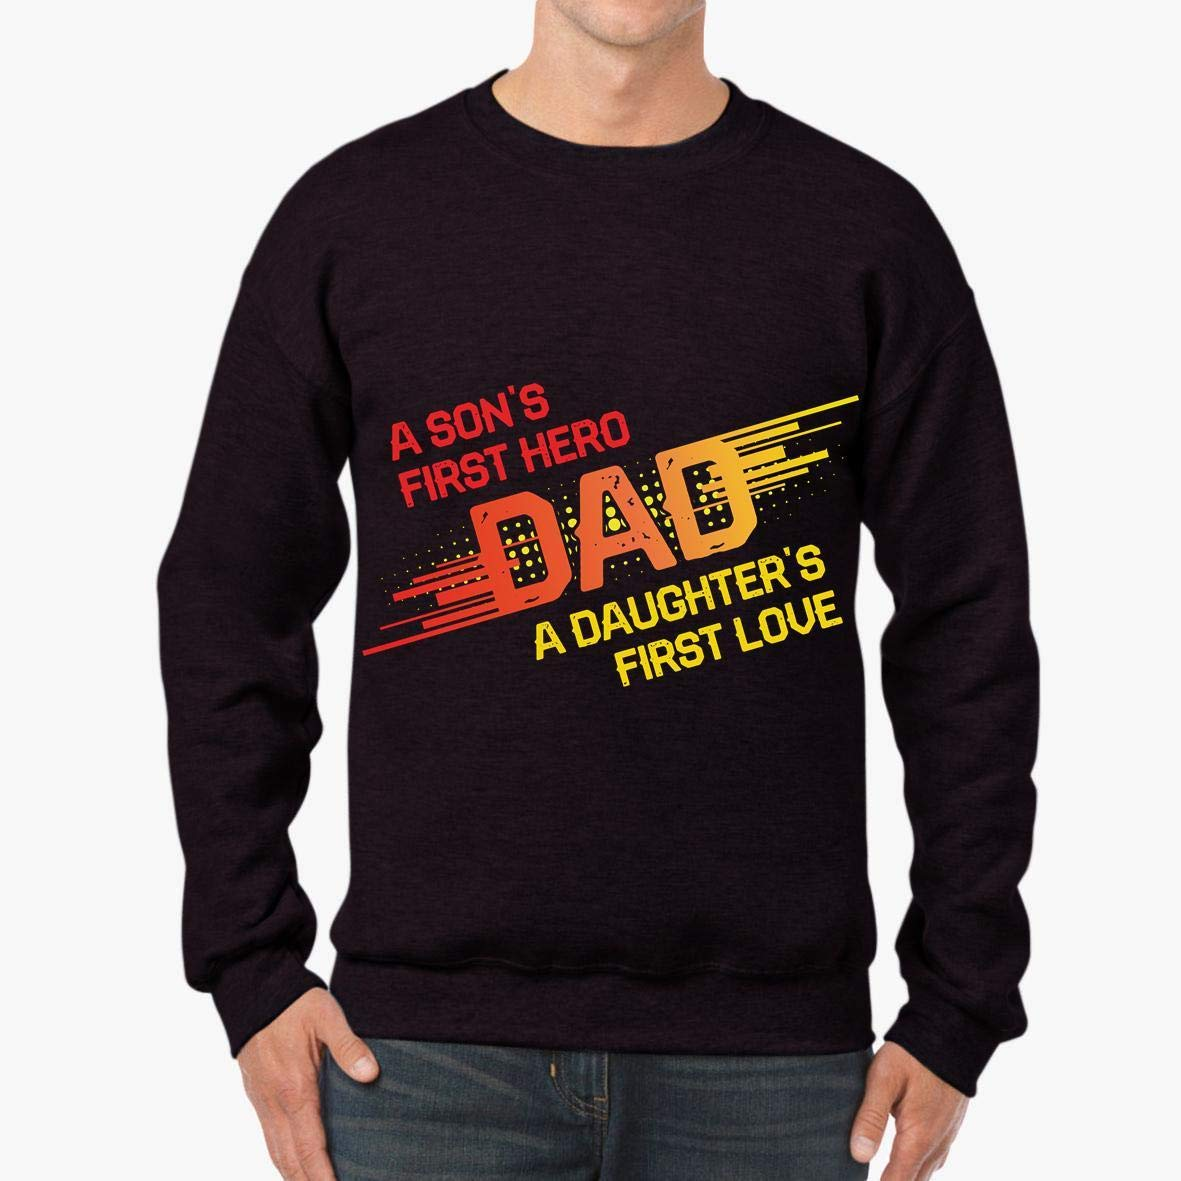 Father/_s Day Top Awesome Unisex Sweatshirt tee First Hero and First Love